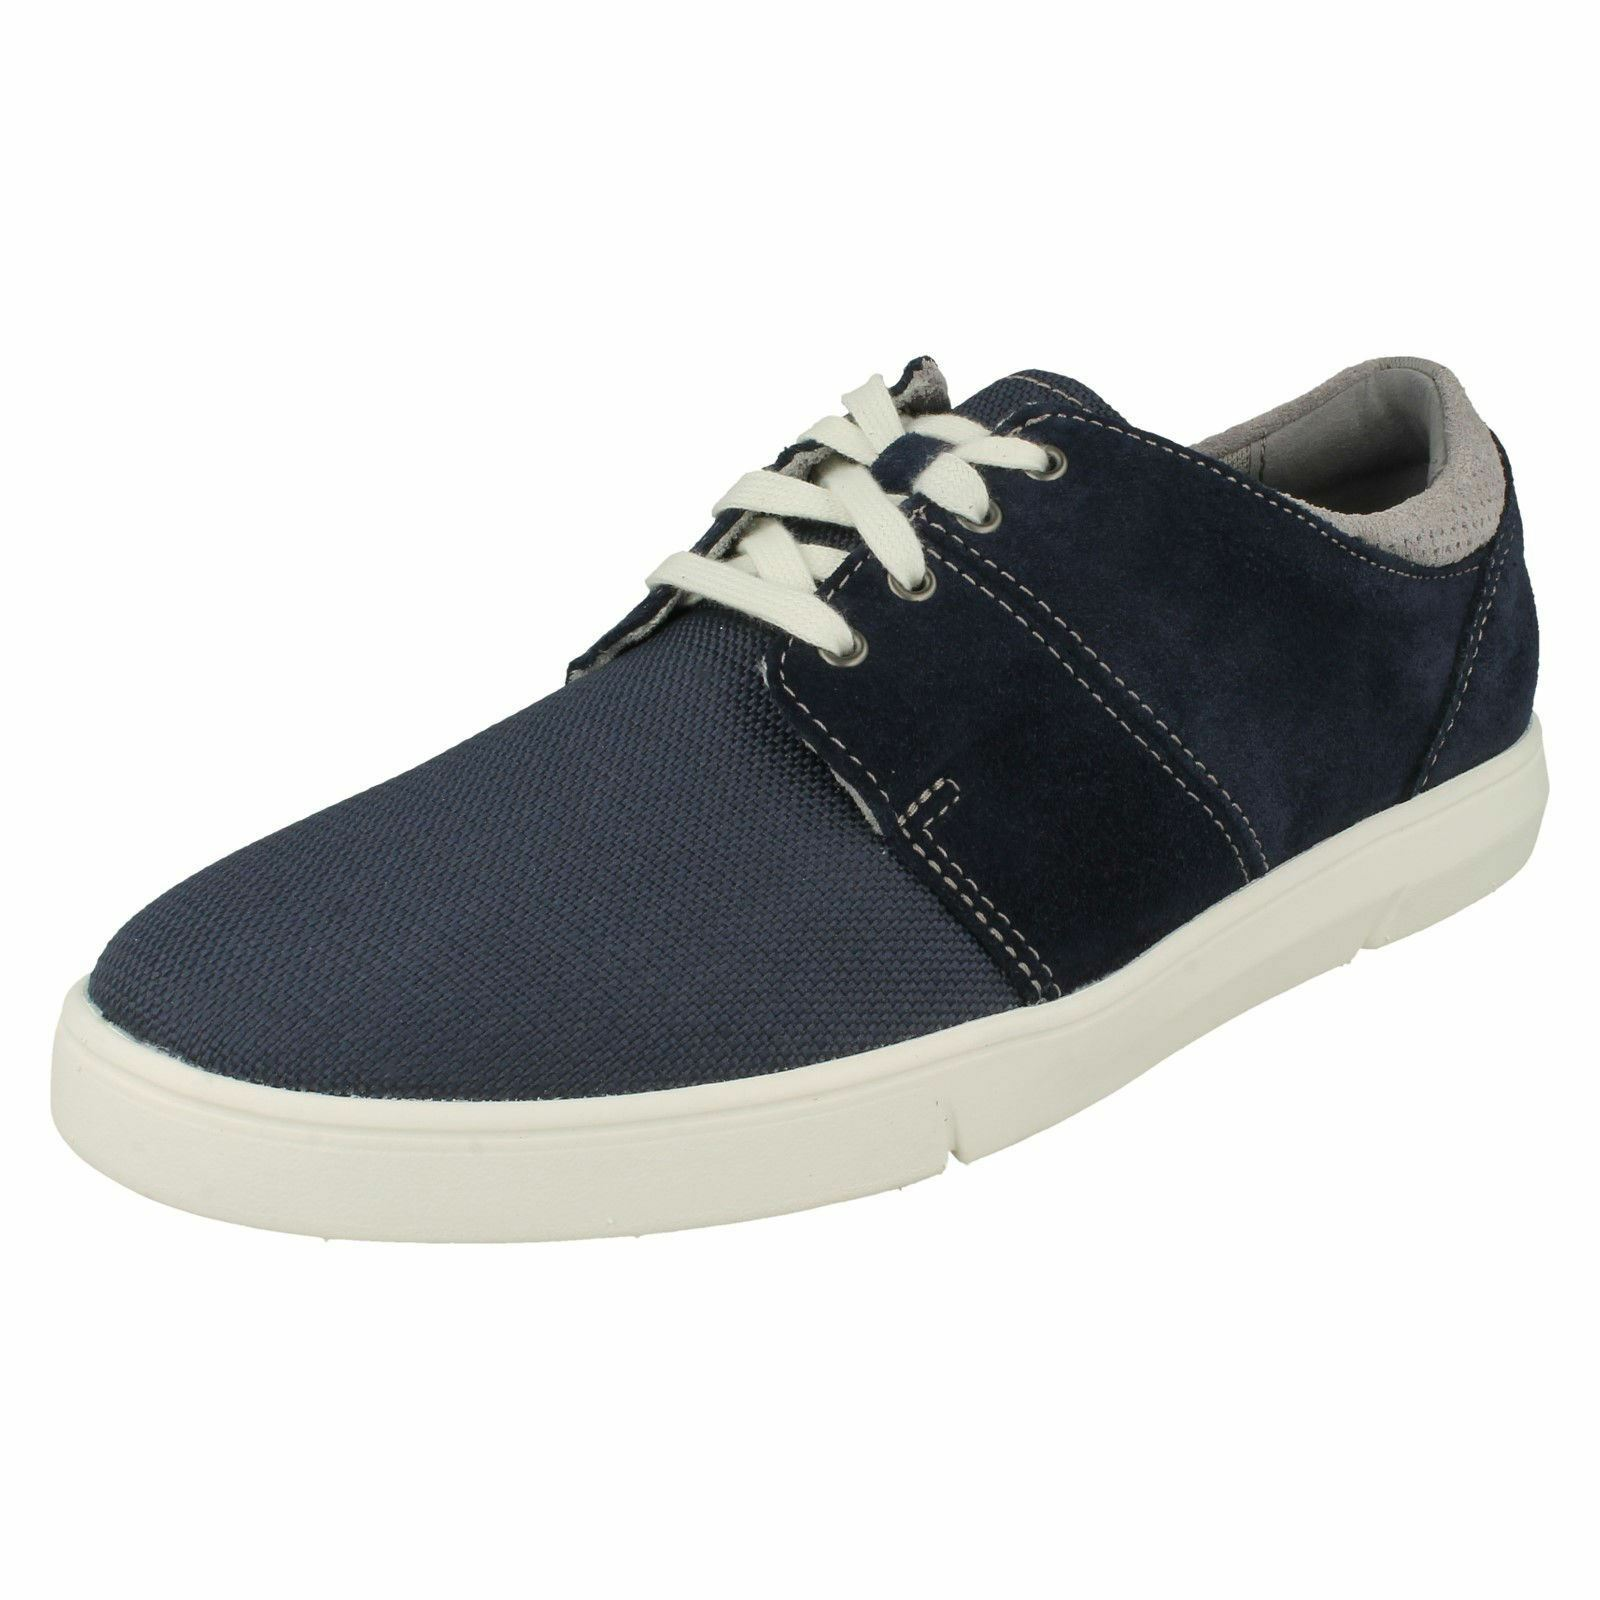 'Mens Clarks' Casual Lace Up schuhe - Landry Edge